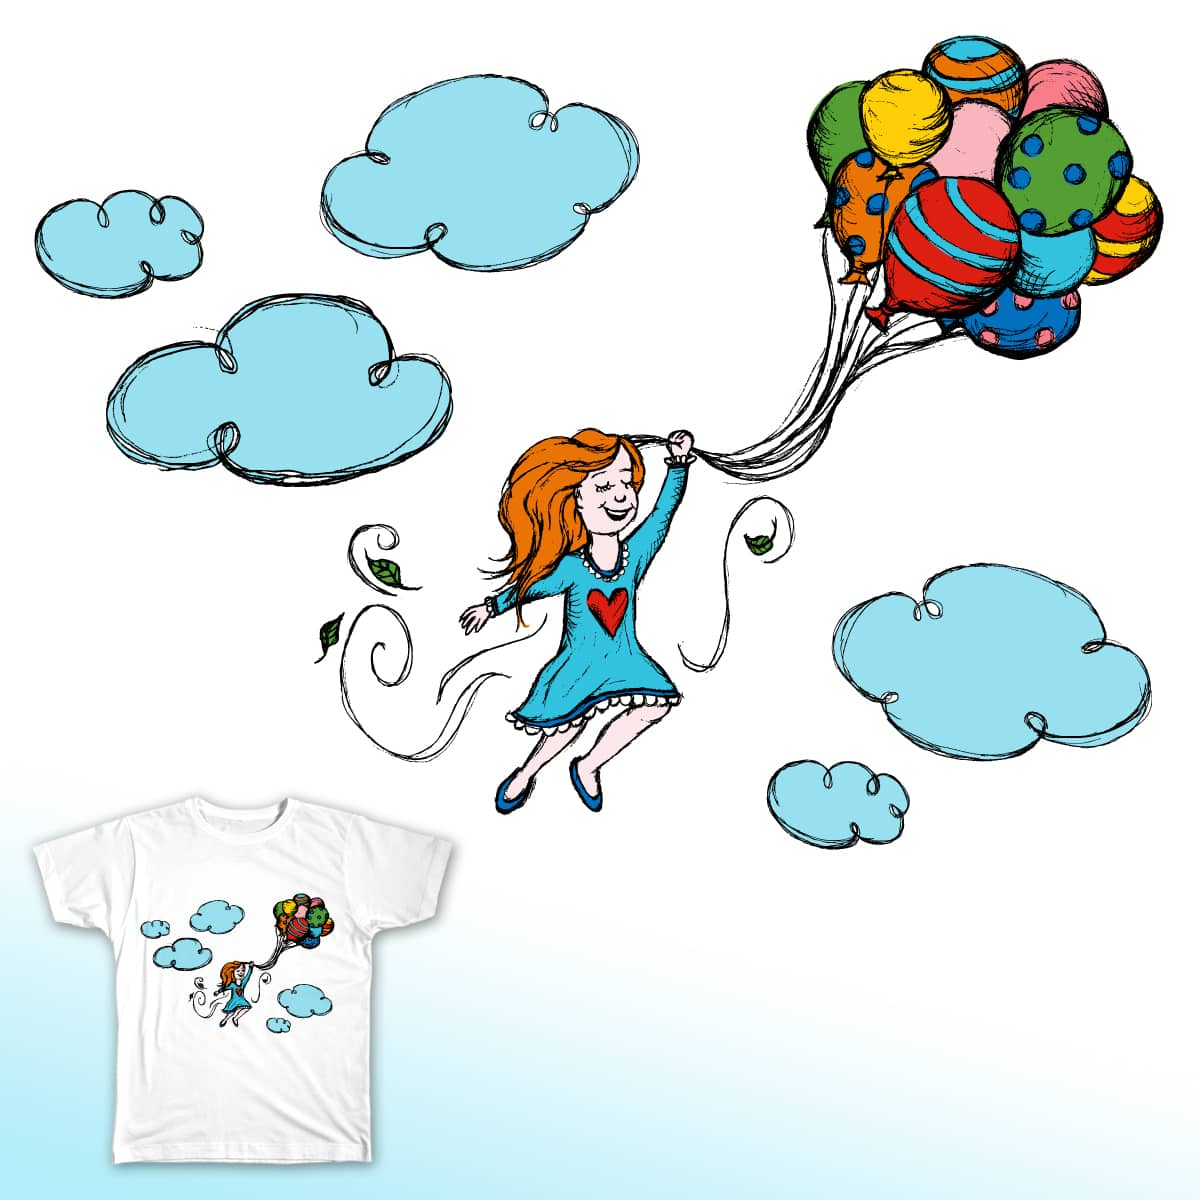 Fly Away! by UltimateBoomDesign on Threadless